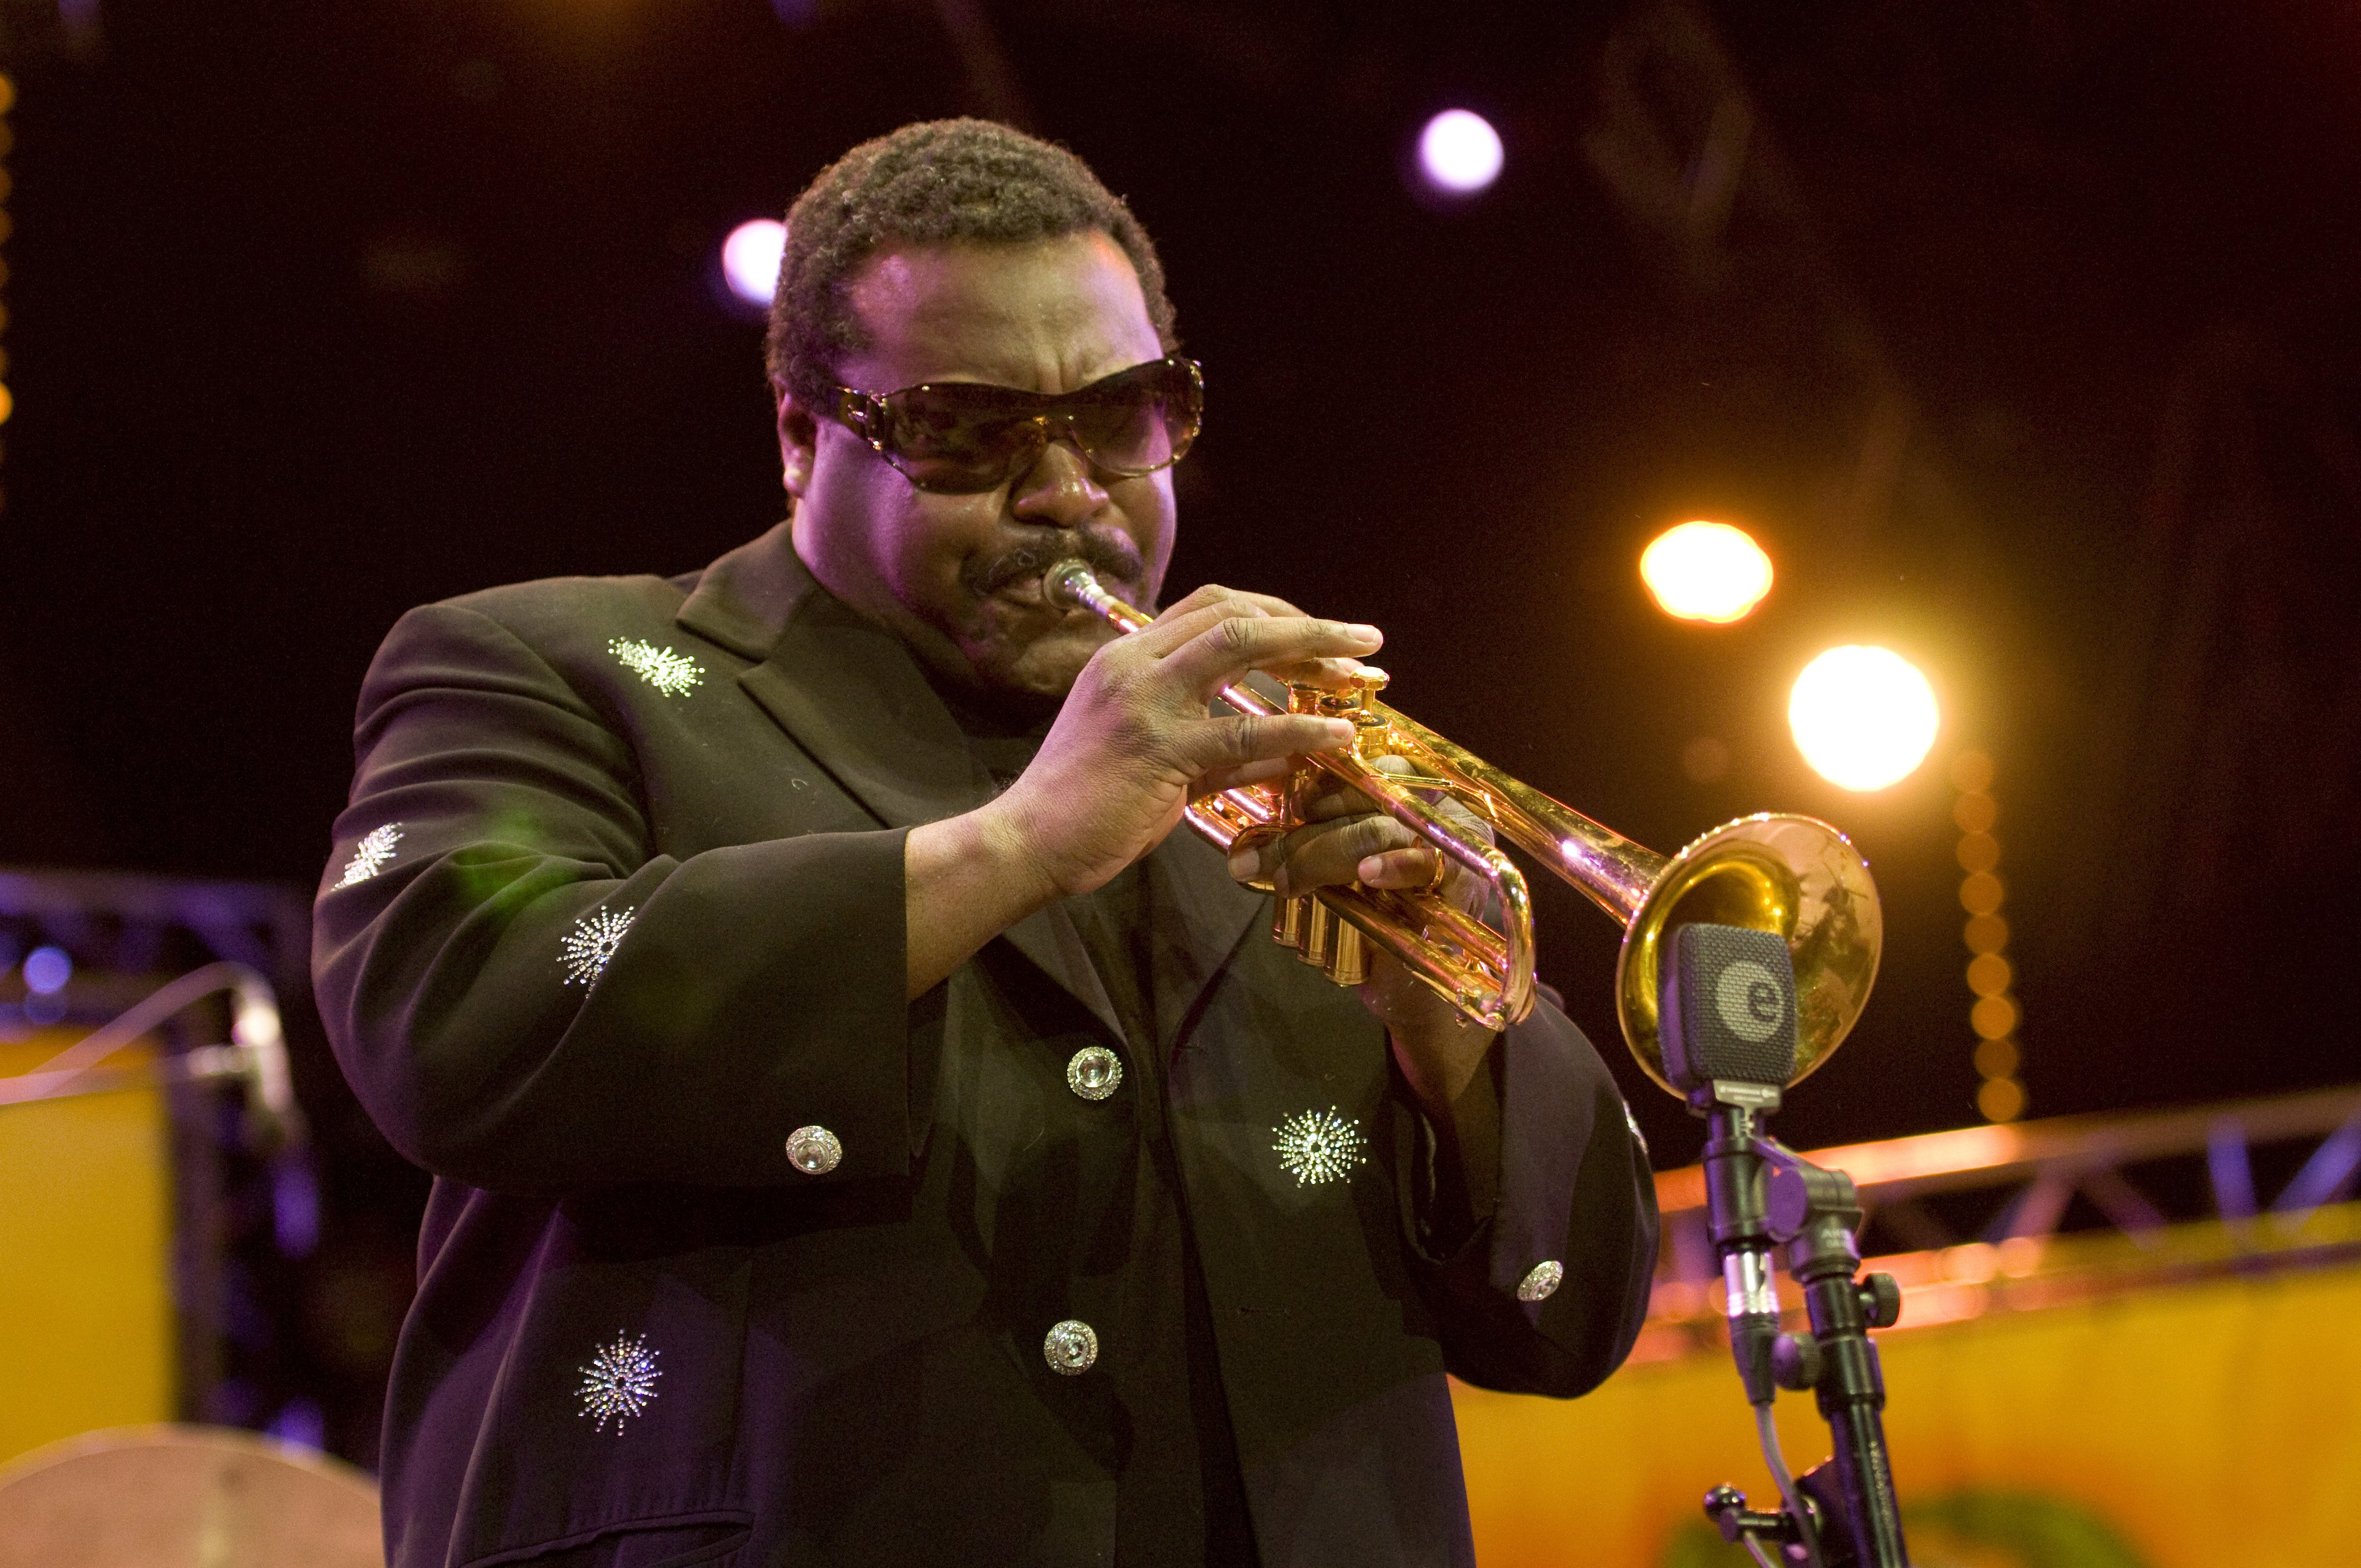 Wallace Roney performs on stage in Vienne, France on July 2, 2011.   Source: Getty Images.